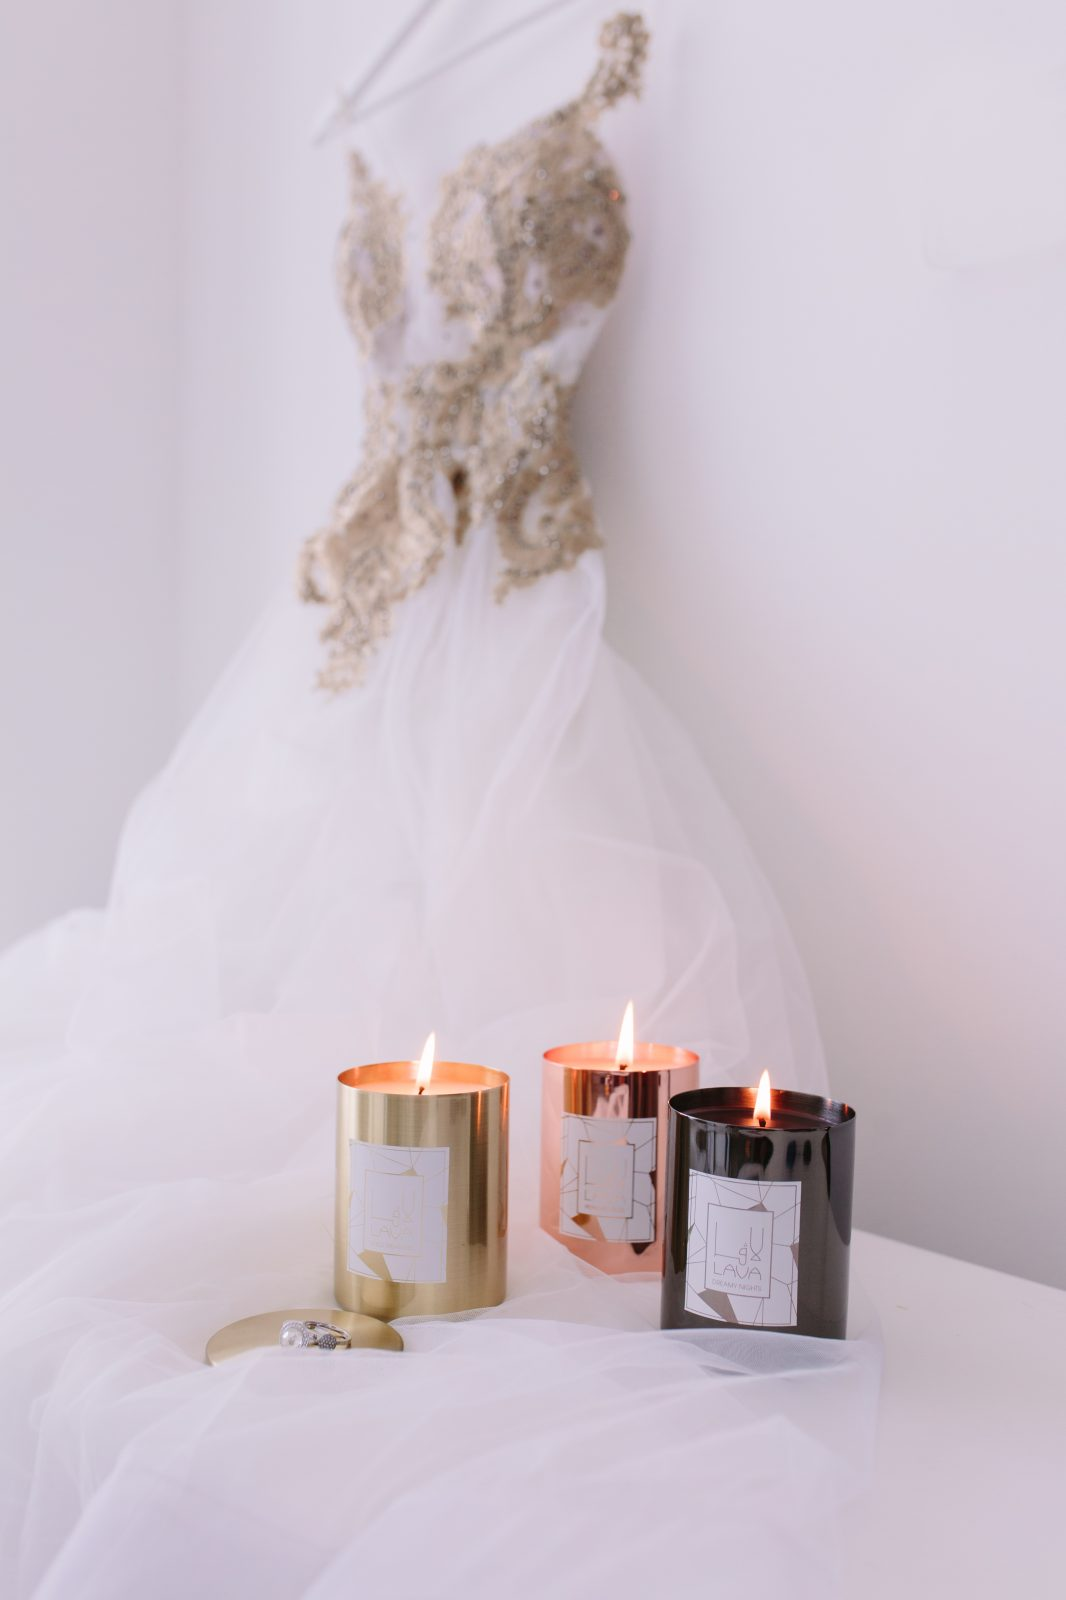 Lava Candles next to wedding dress